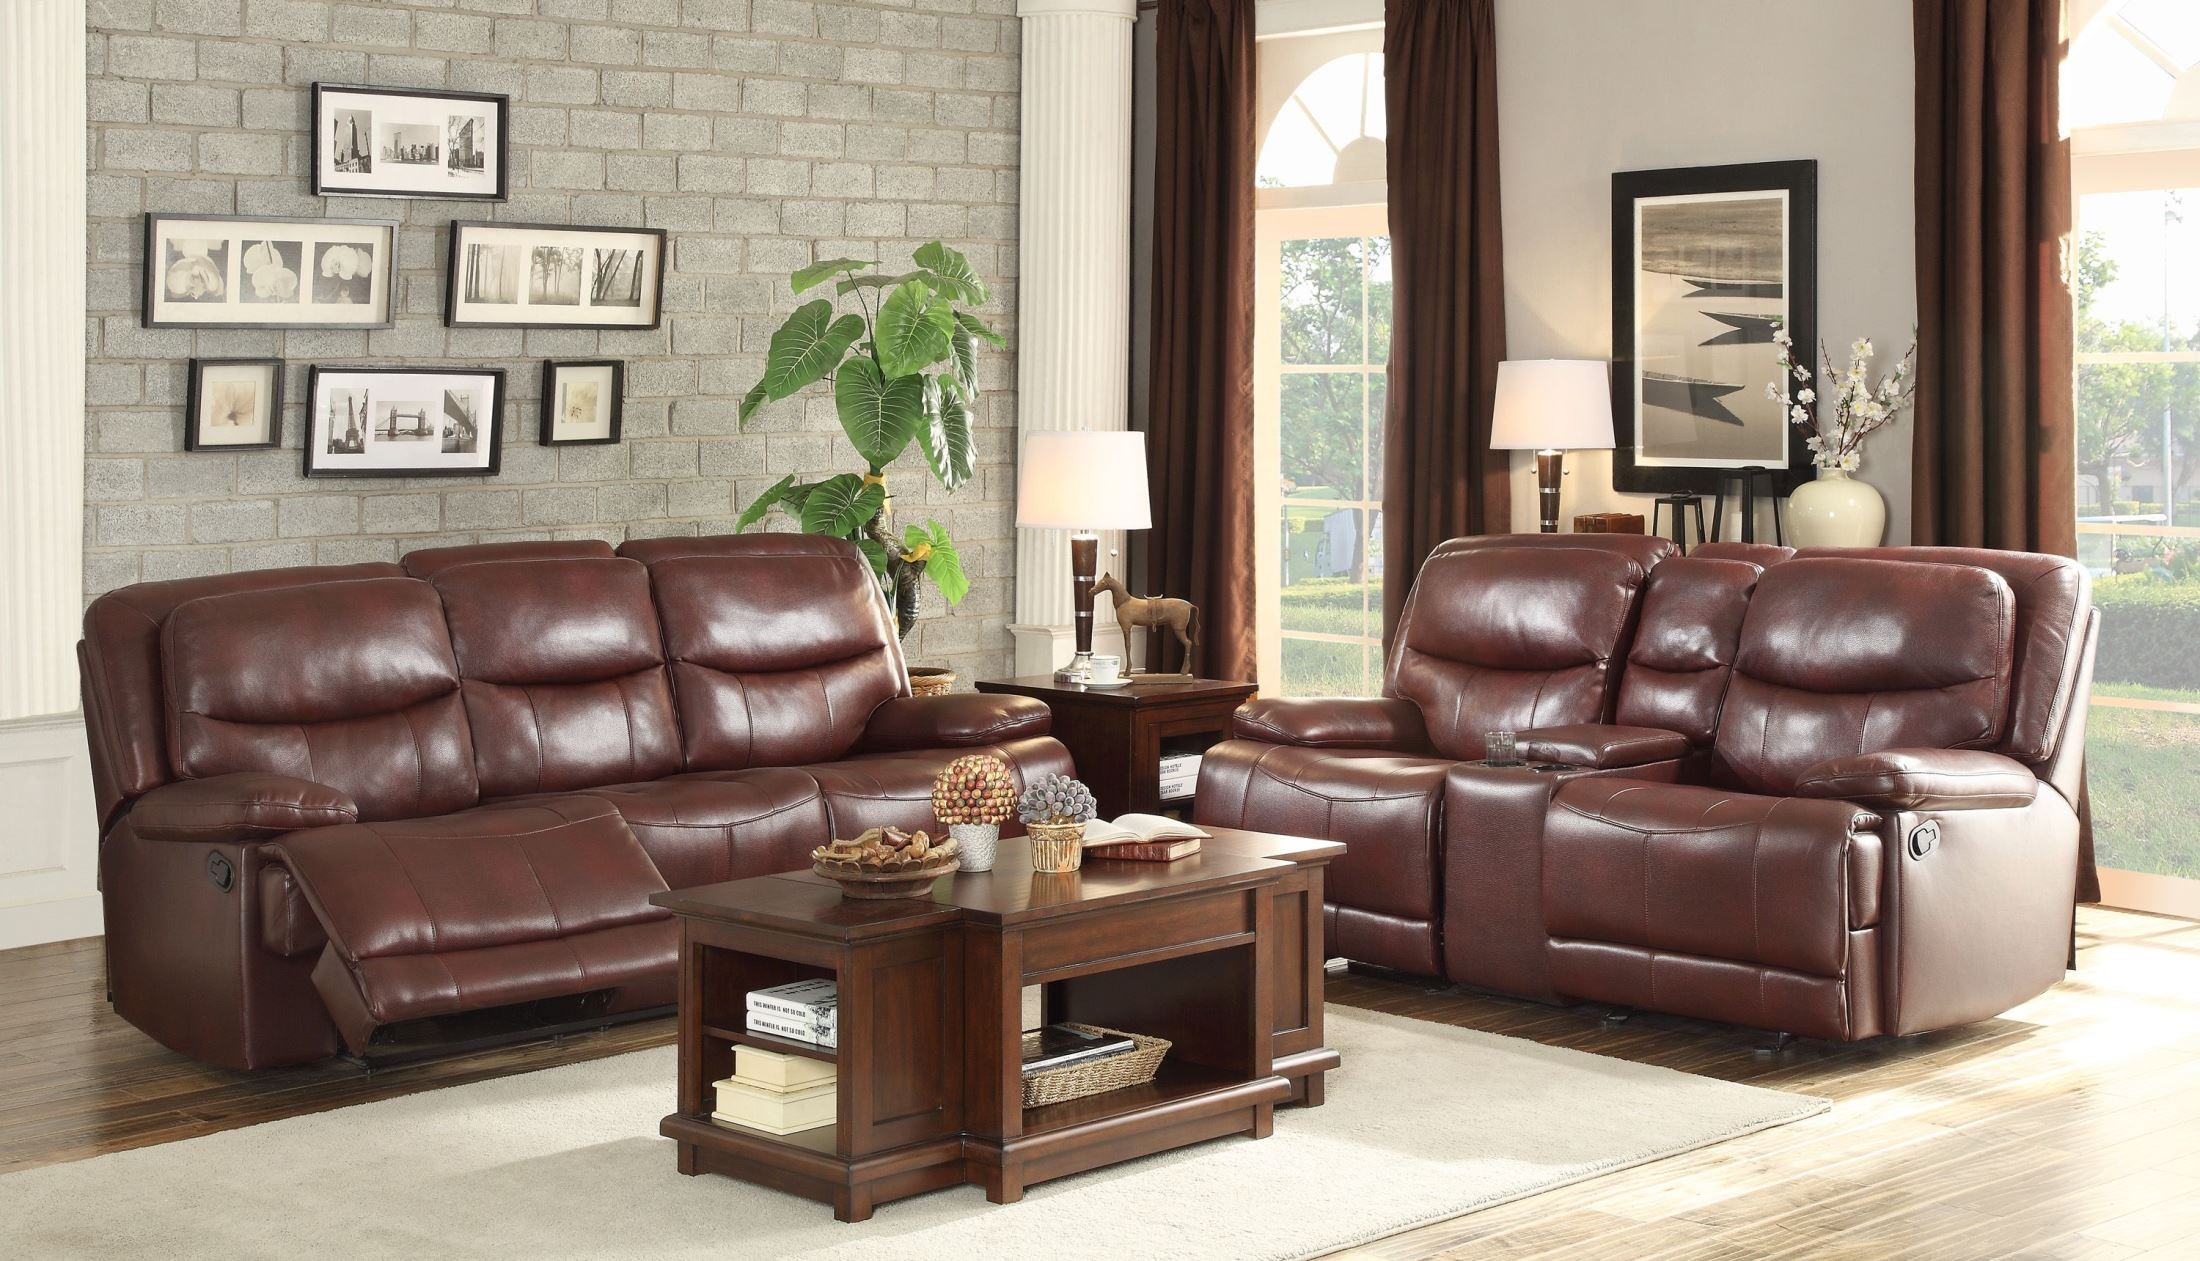 Risco Burgundy Double Reclining Living Room Set From